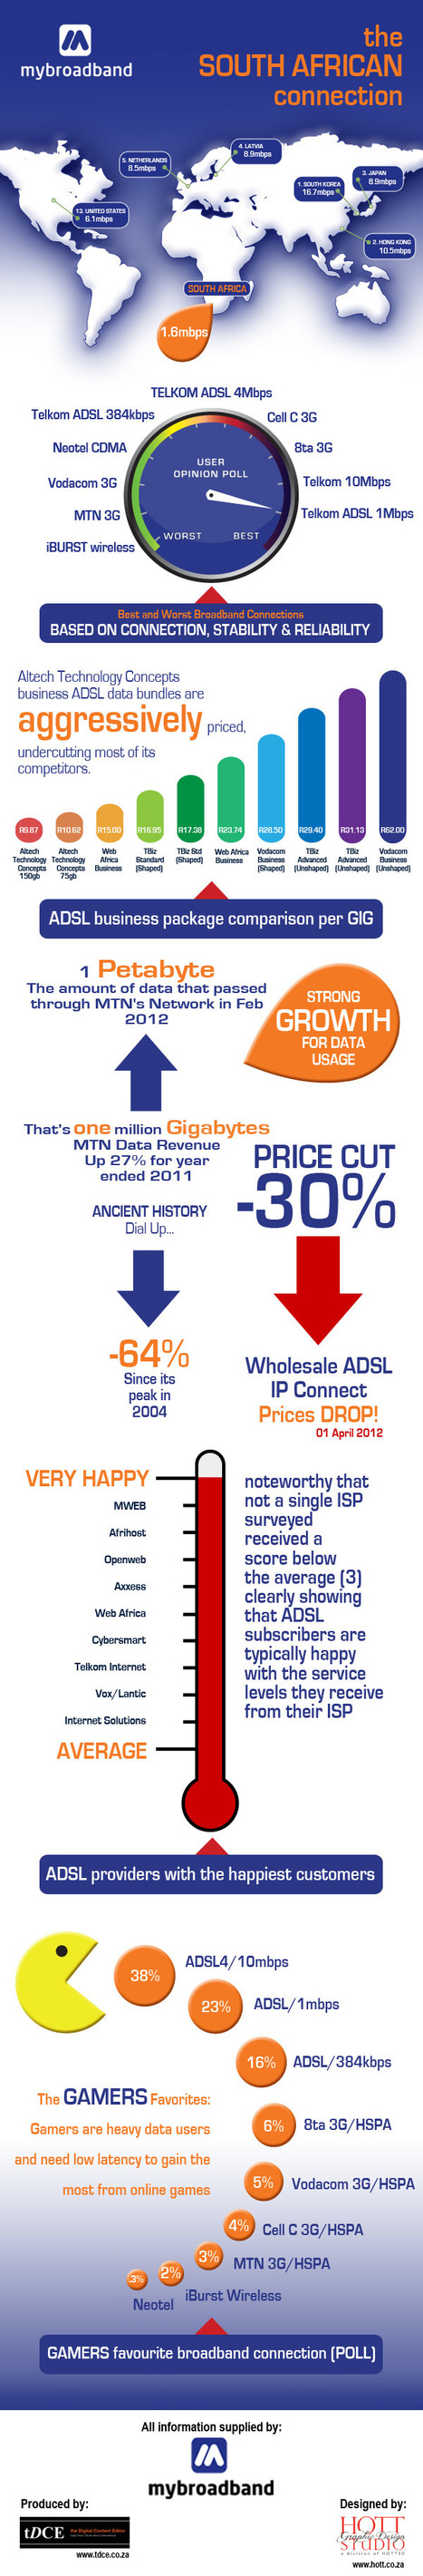 The Broadband Market in South Africa [Infographic] | AtDotCom Social media | Scoop.it